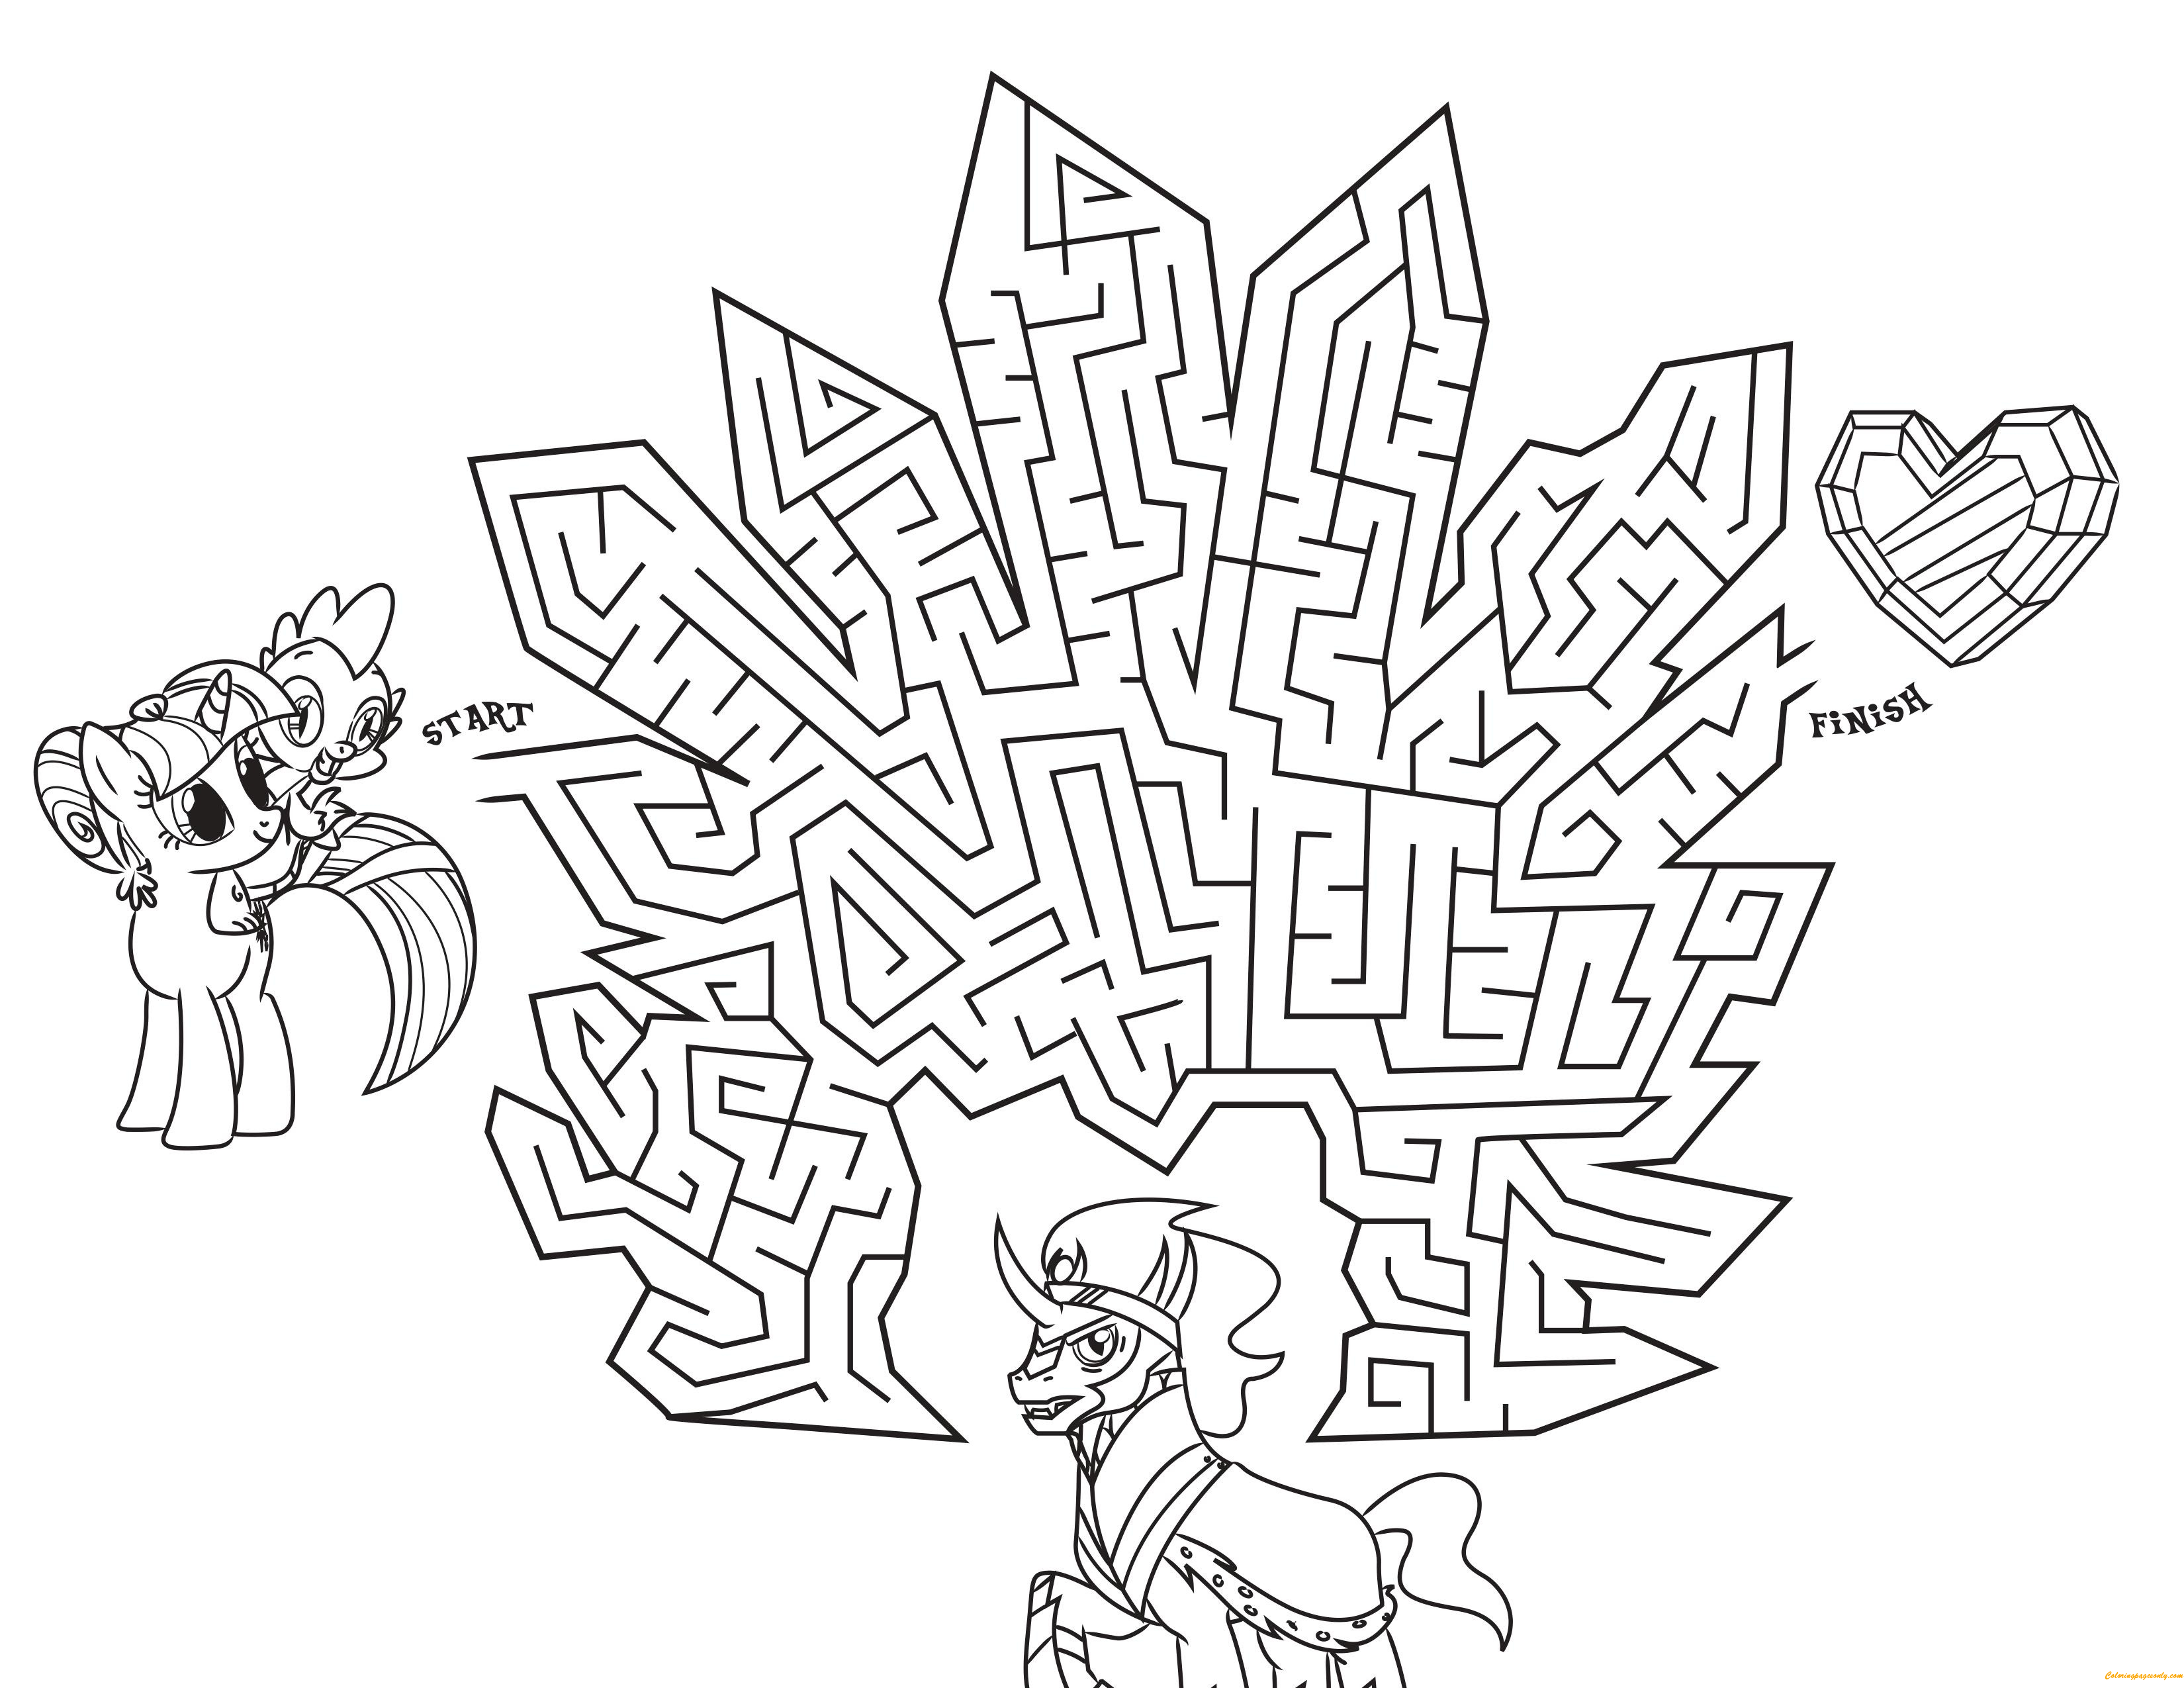 Coloring Pages Mazes - Coloring Home | 2550x3300